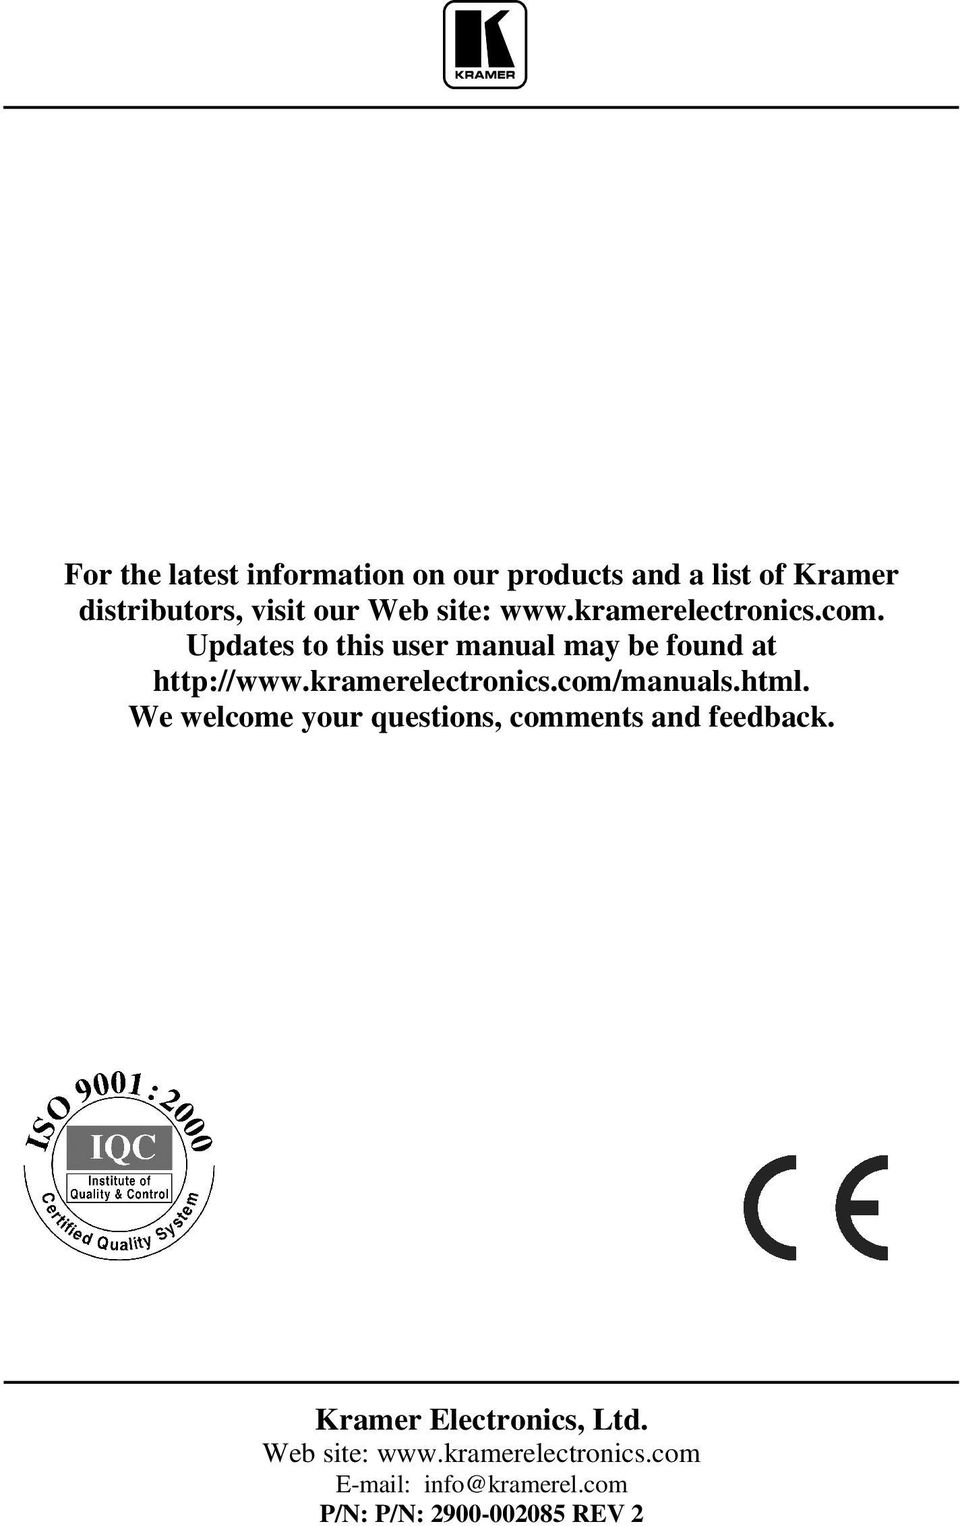 kramerelectronics.com/manuals.html. We welcome your questions, comments and feedback.